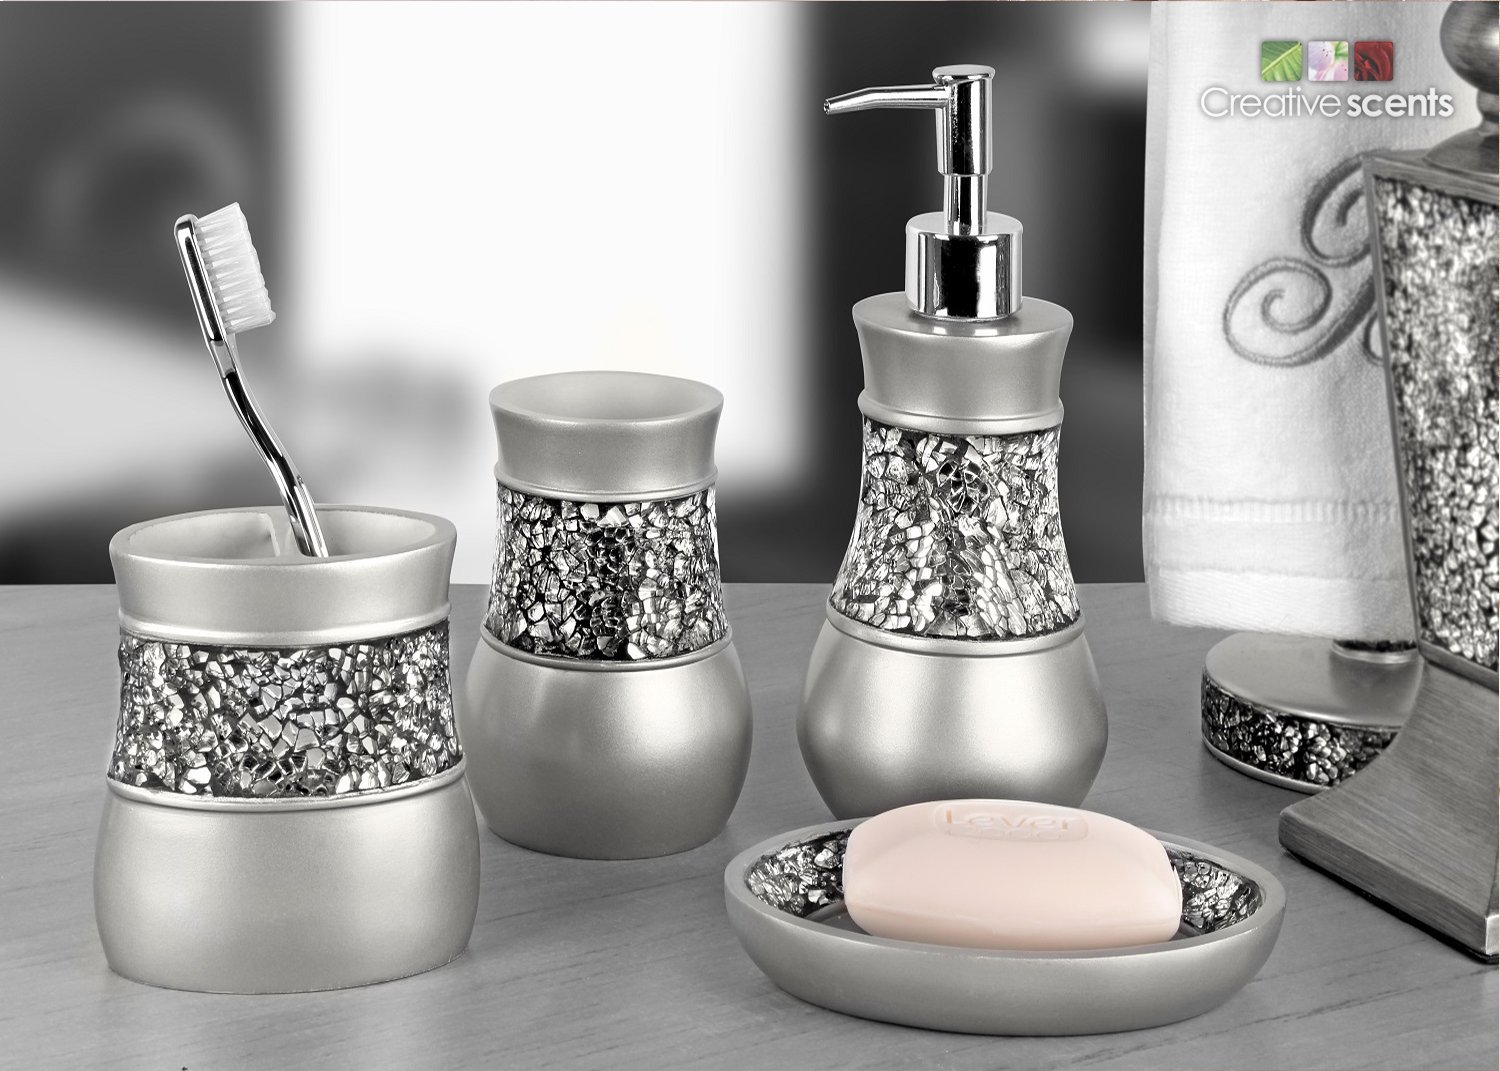 Amazoncom Creative Scents Brushed Nickel Bathroom Accessories Set